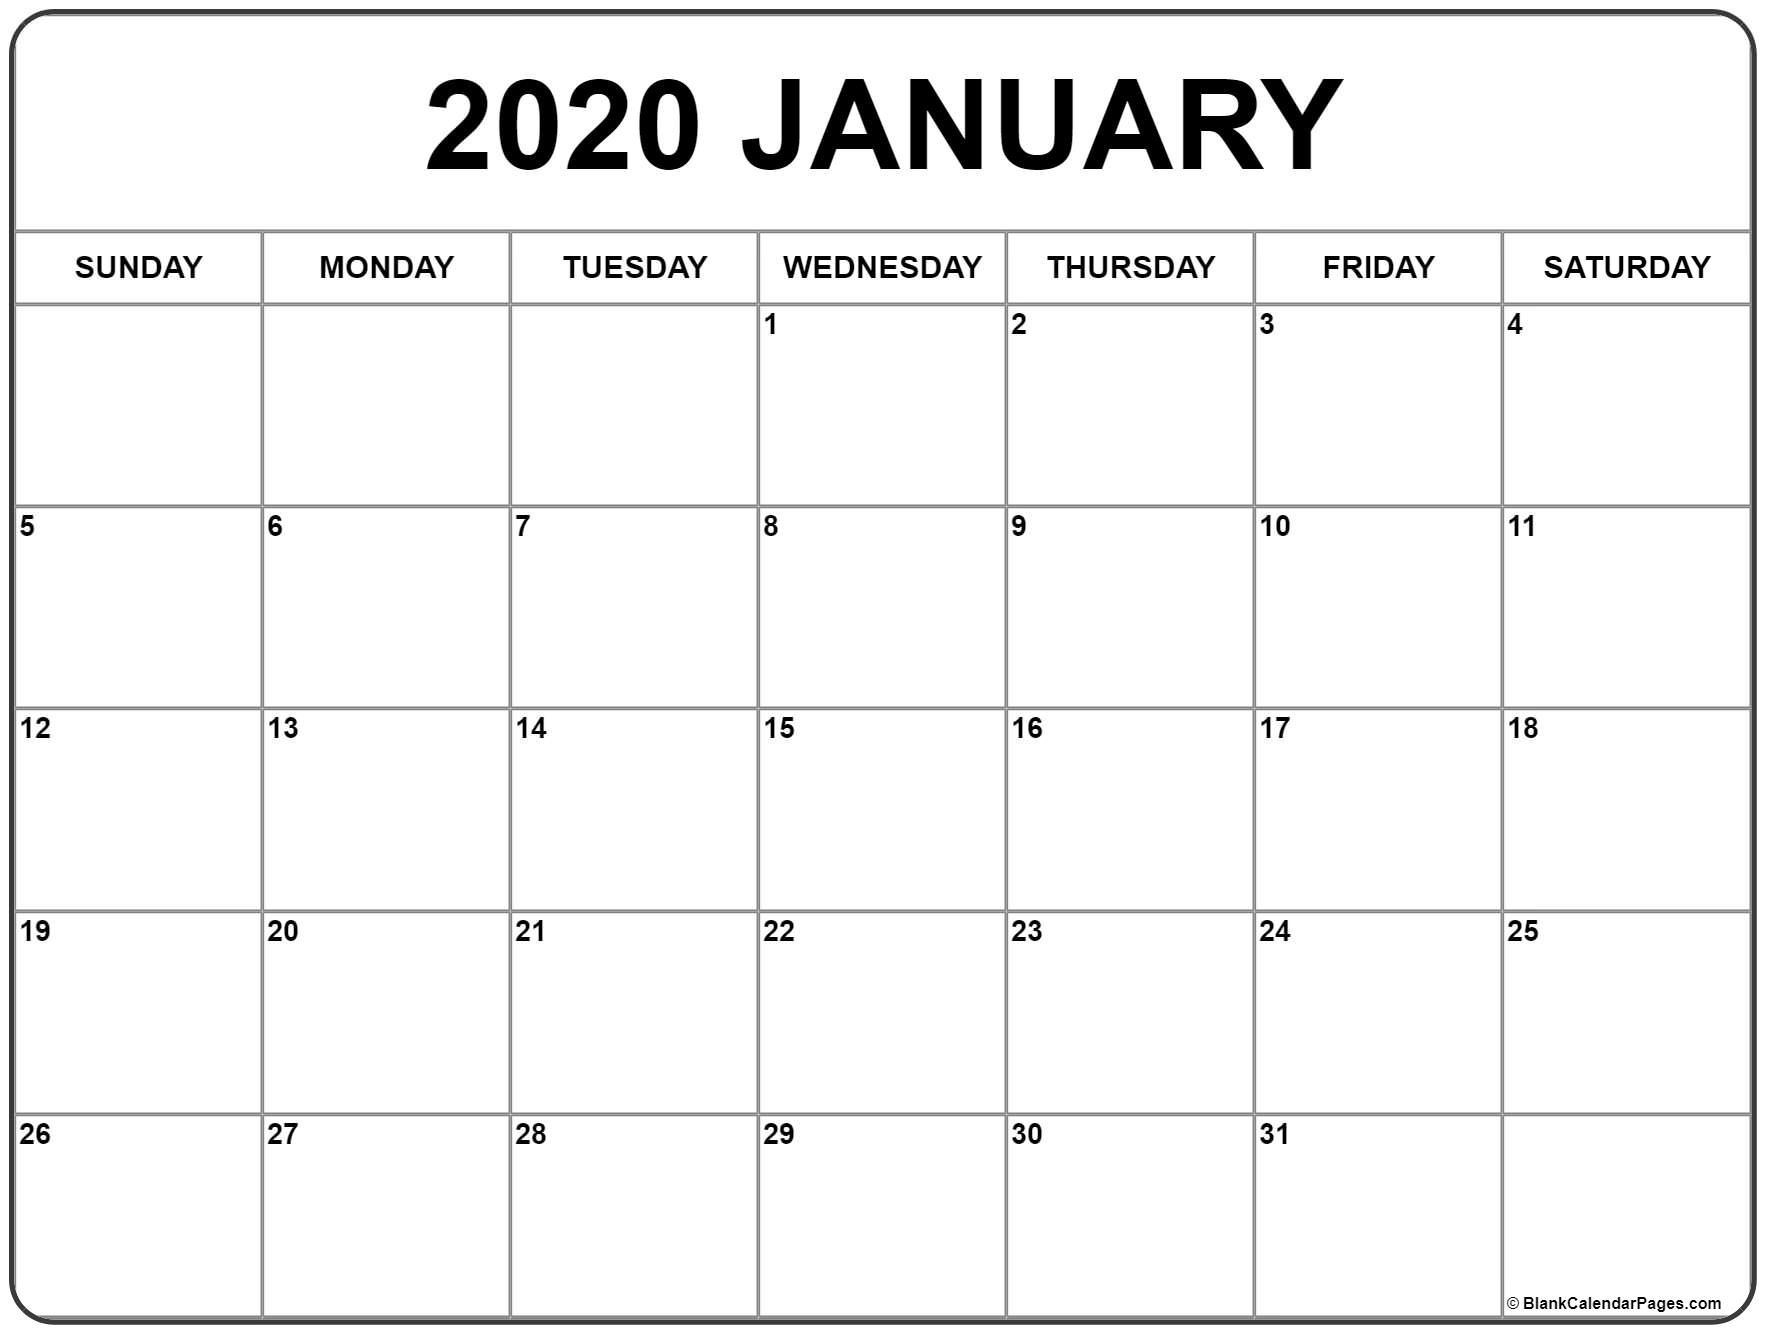 January 2020 Calendar | Free Printable Monthly Calendars-Images Of January 2020 Calendar